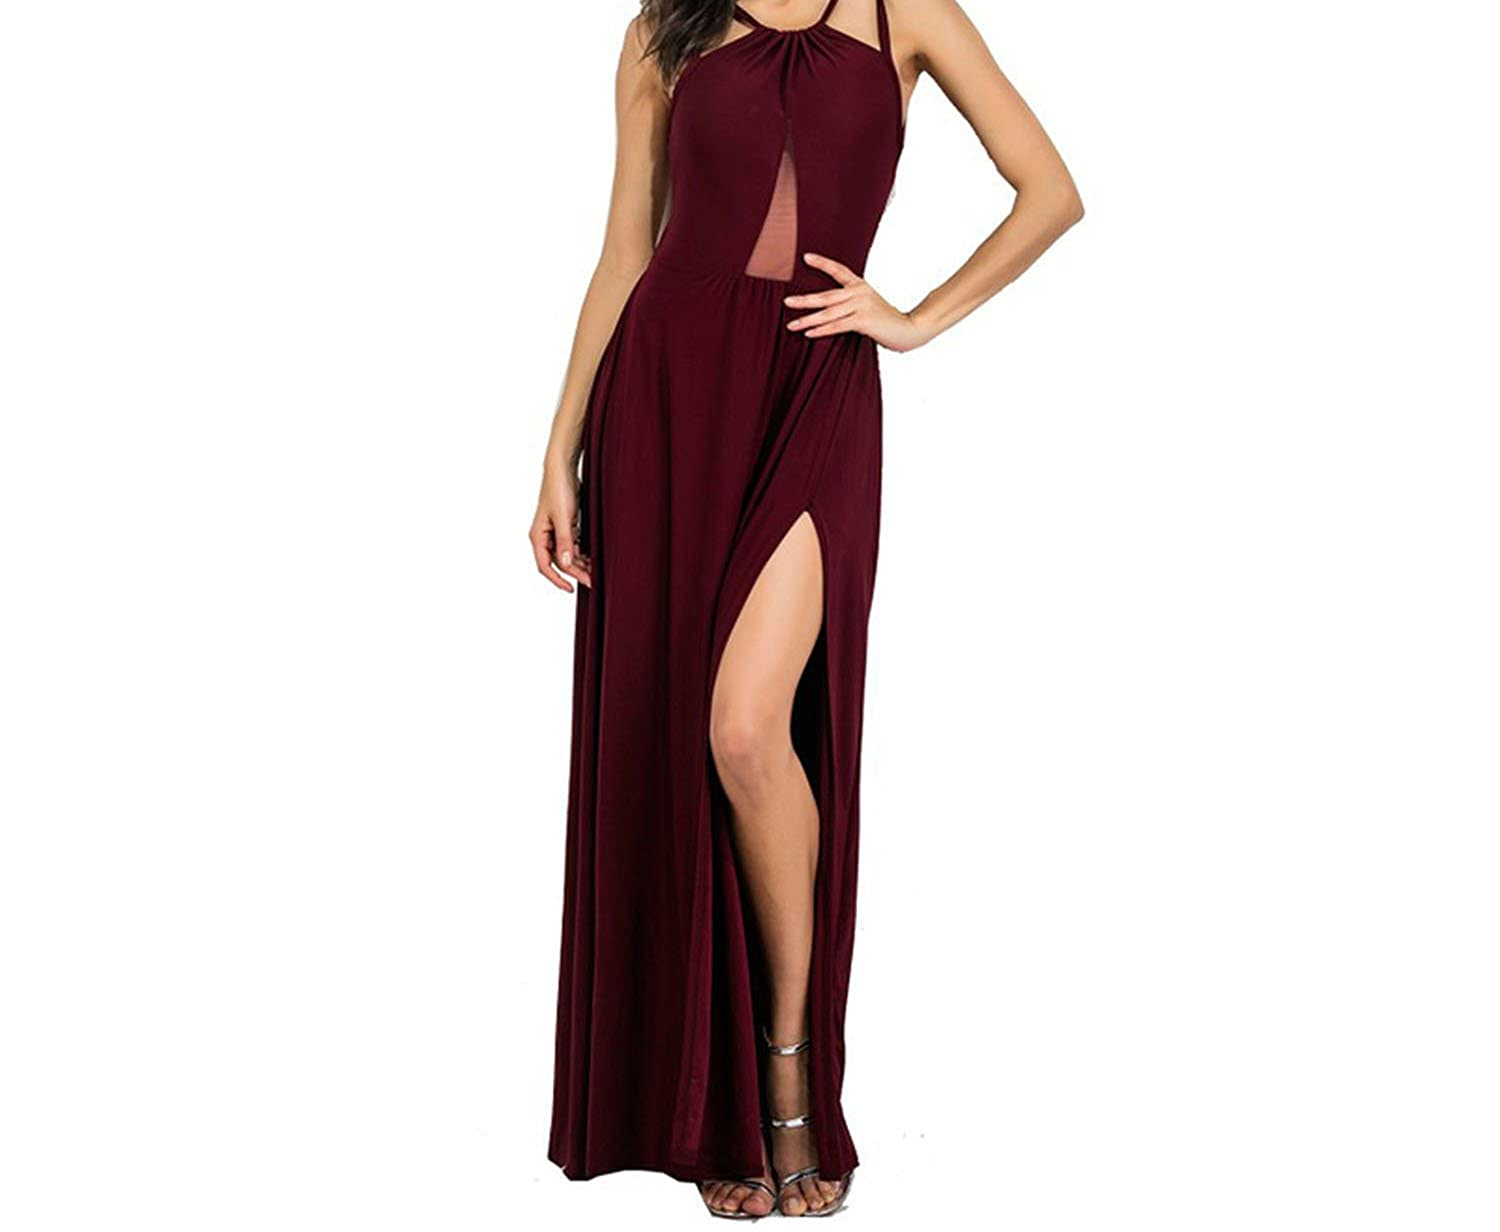 Split Backless Crossing Sexy Dress Female Autumn 2018 Fashion Sleeveless V Neck Women Dress at Amazon Womens Clothing store: